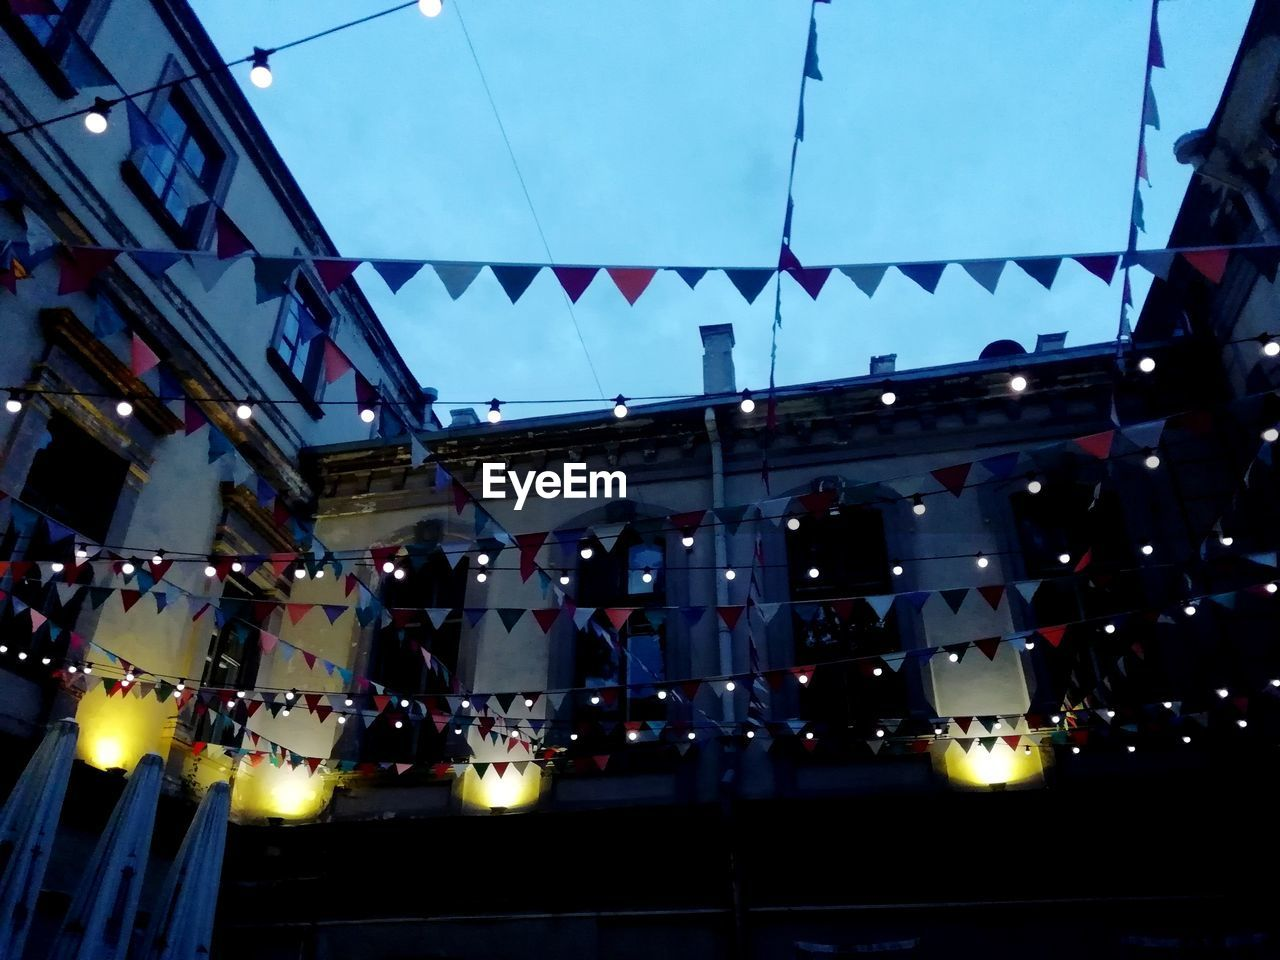 decoration, illuminated, built structure, hanging, architecture, building exterior, low angle view, lighting equipment, celebration, bunting, no people, building, flag, sky, nature, event, outdoors, dusk, night, ceiling